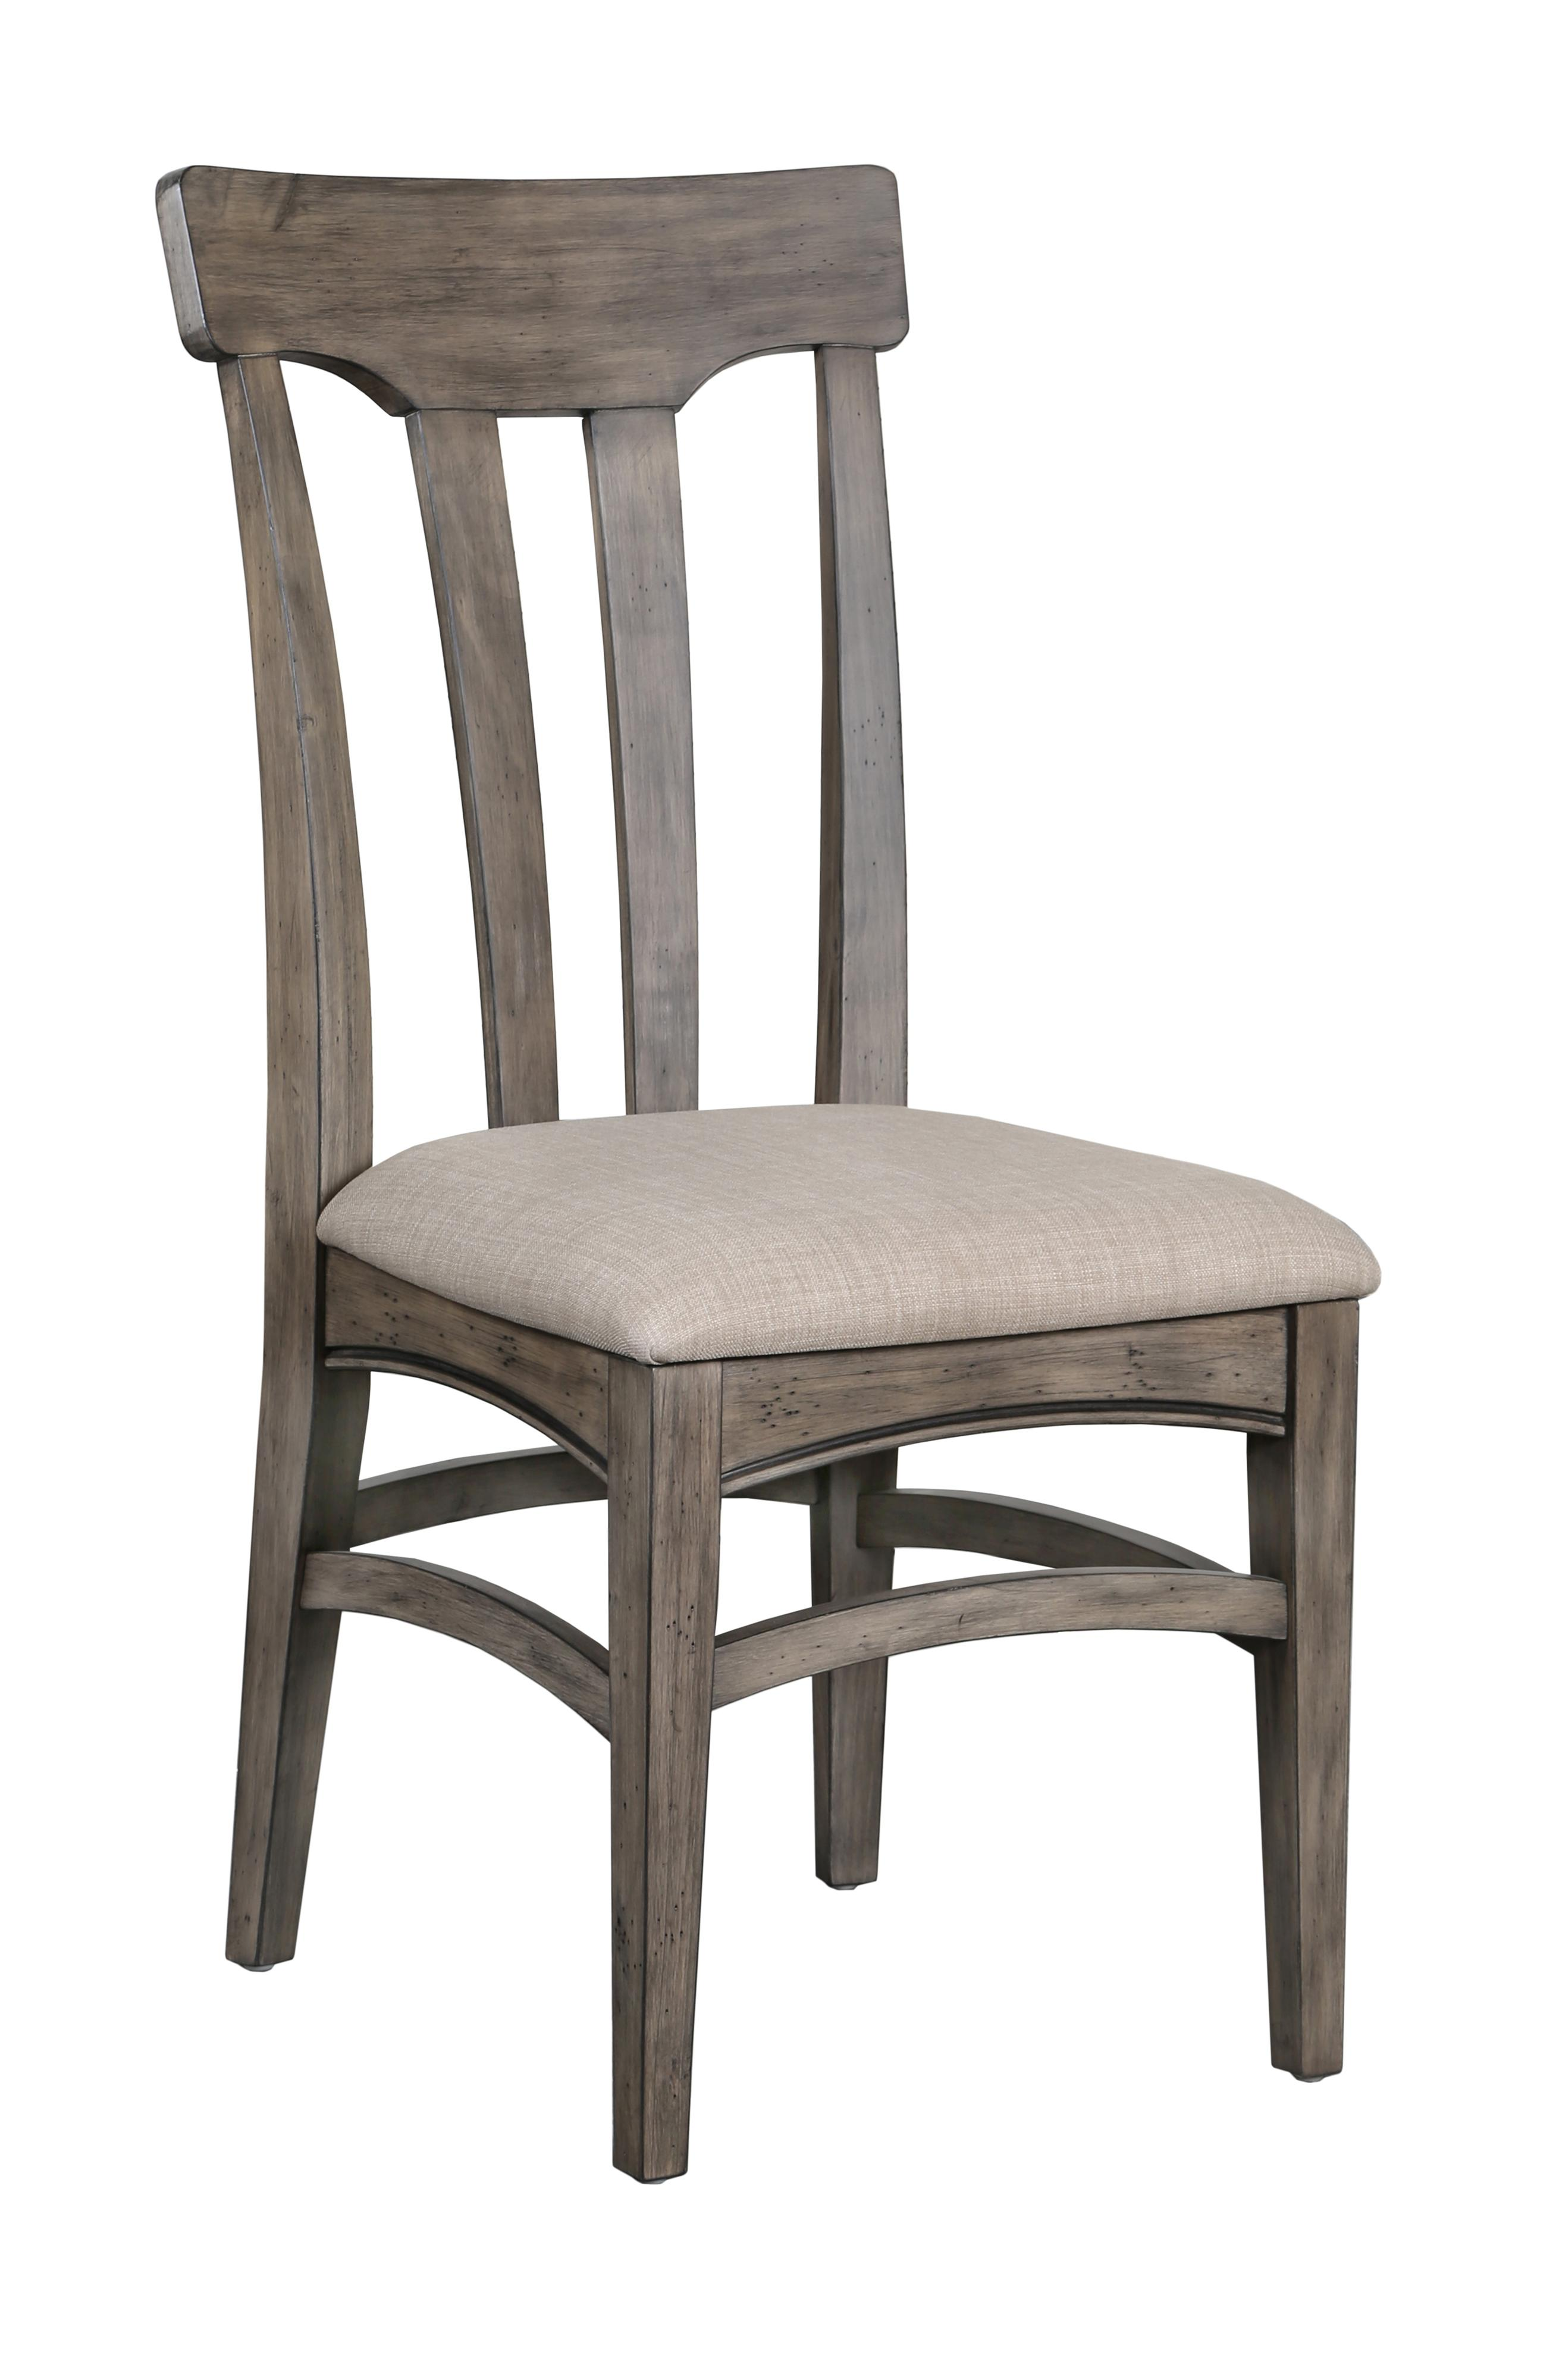 room furniture dining side chair magnussen home walton dining chair